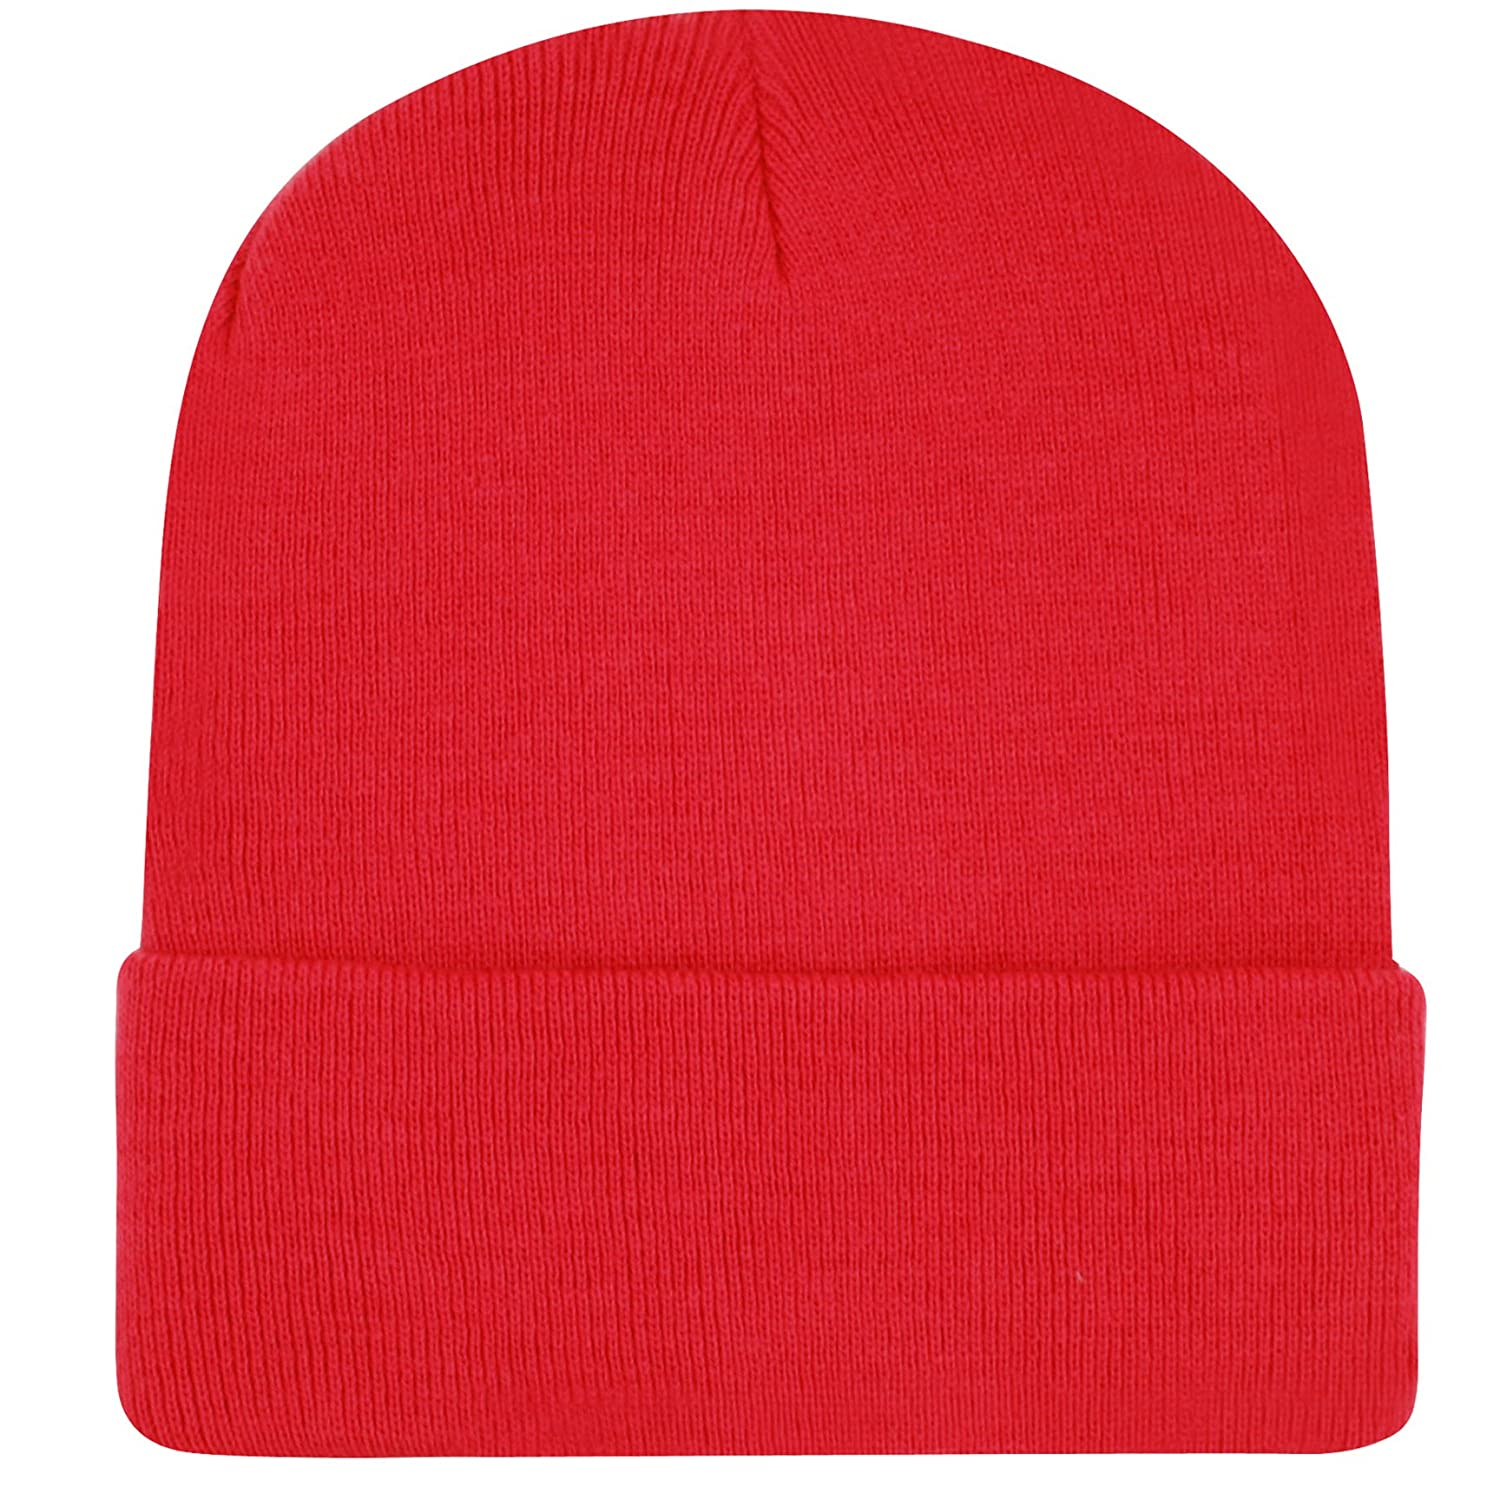 19163c1ff798d E-Flag Plain Knit Cap Cold Winter Cuff Beanie (22+ Colors Available) (A  RED) at Amazon Men s Clothing store